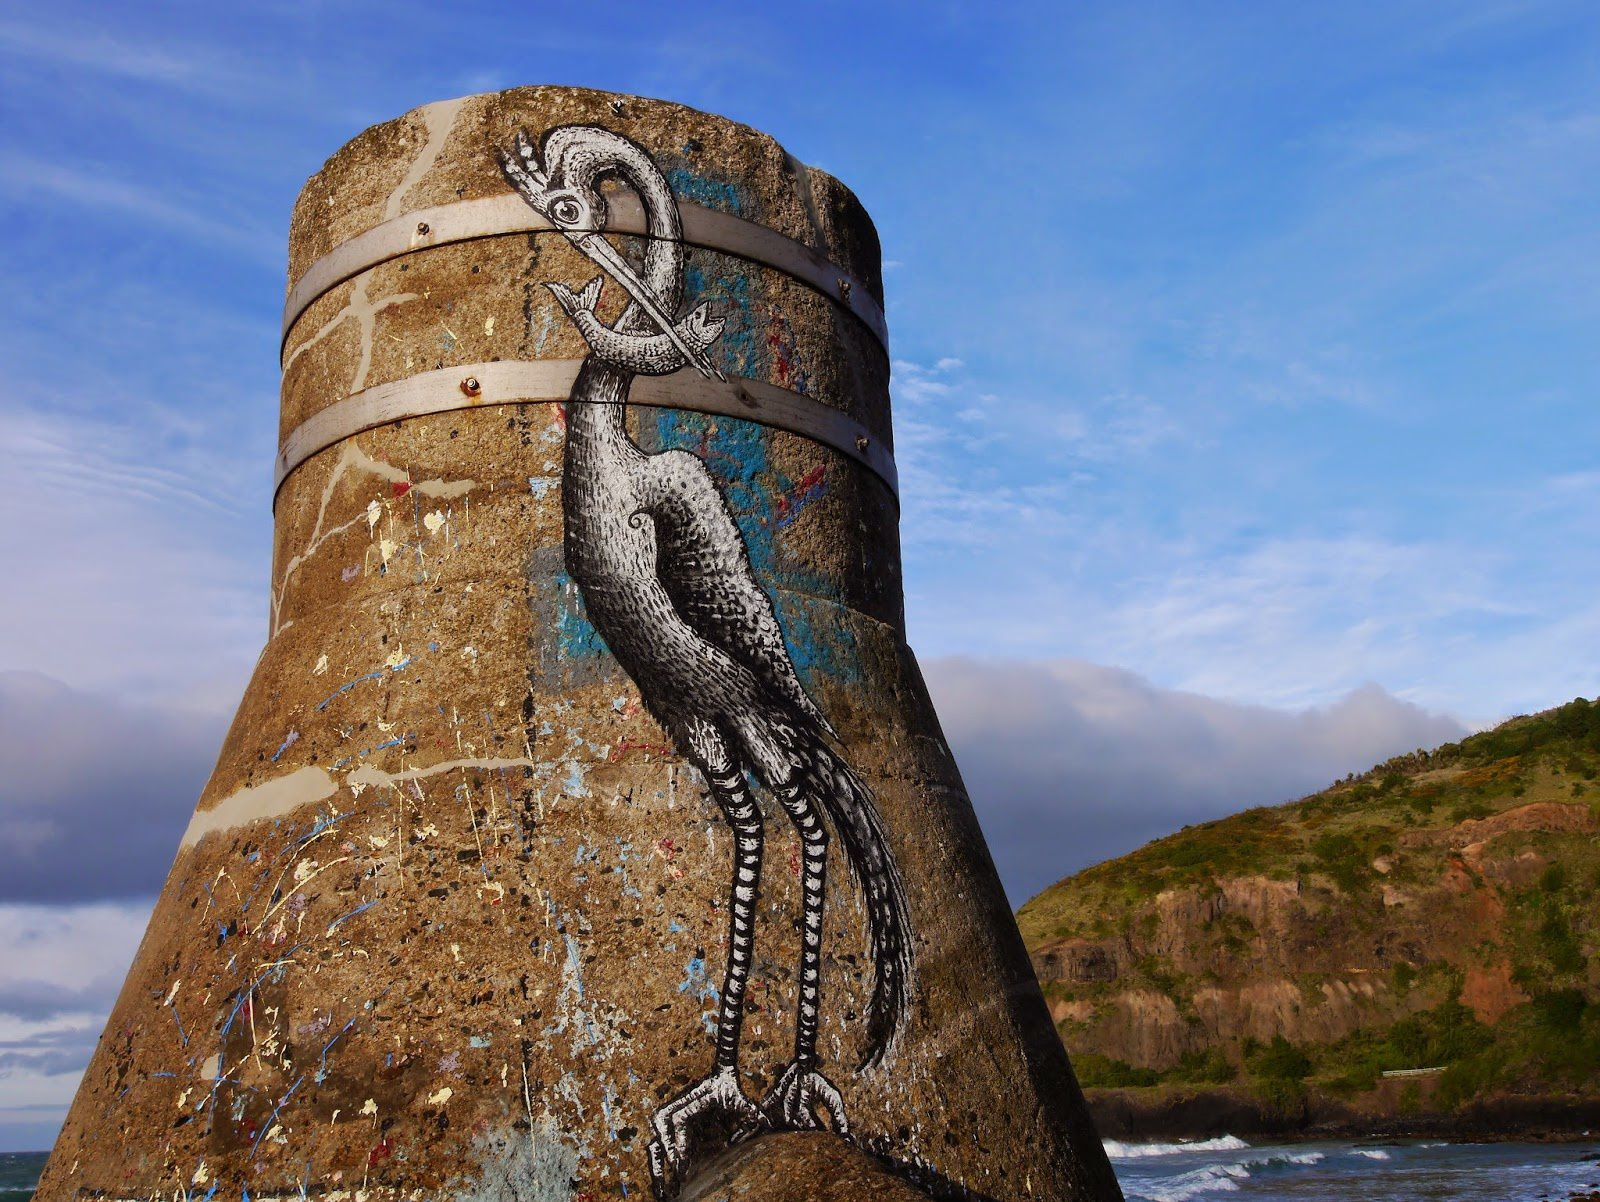 Phlegm new mural in Dunedin, New Zealand